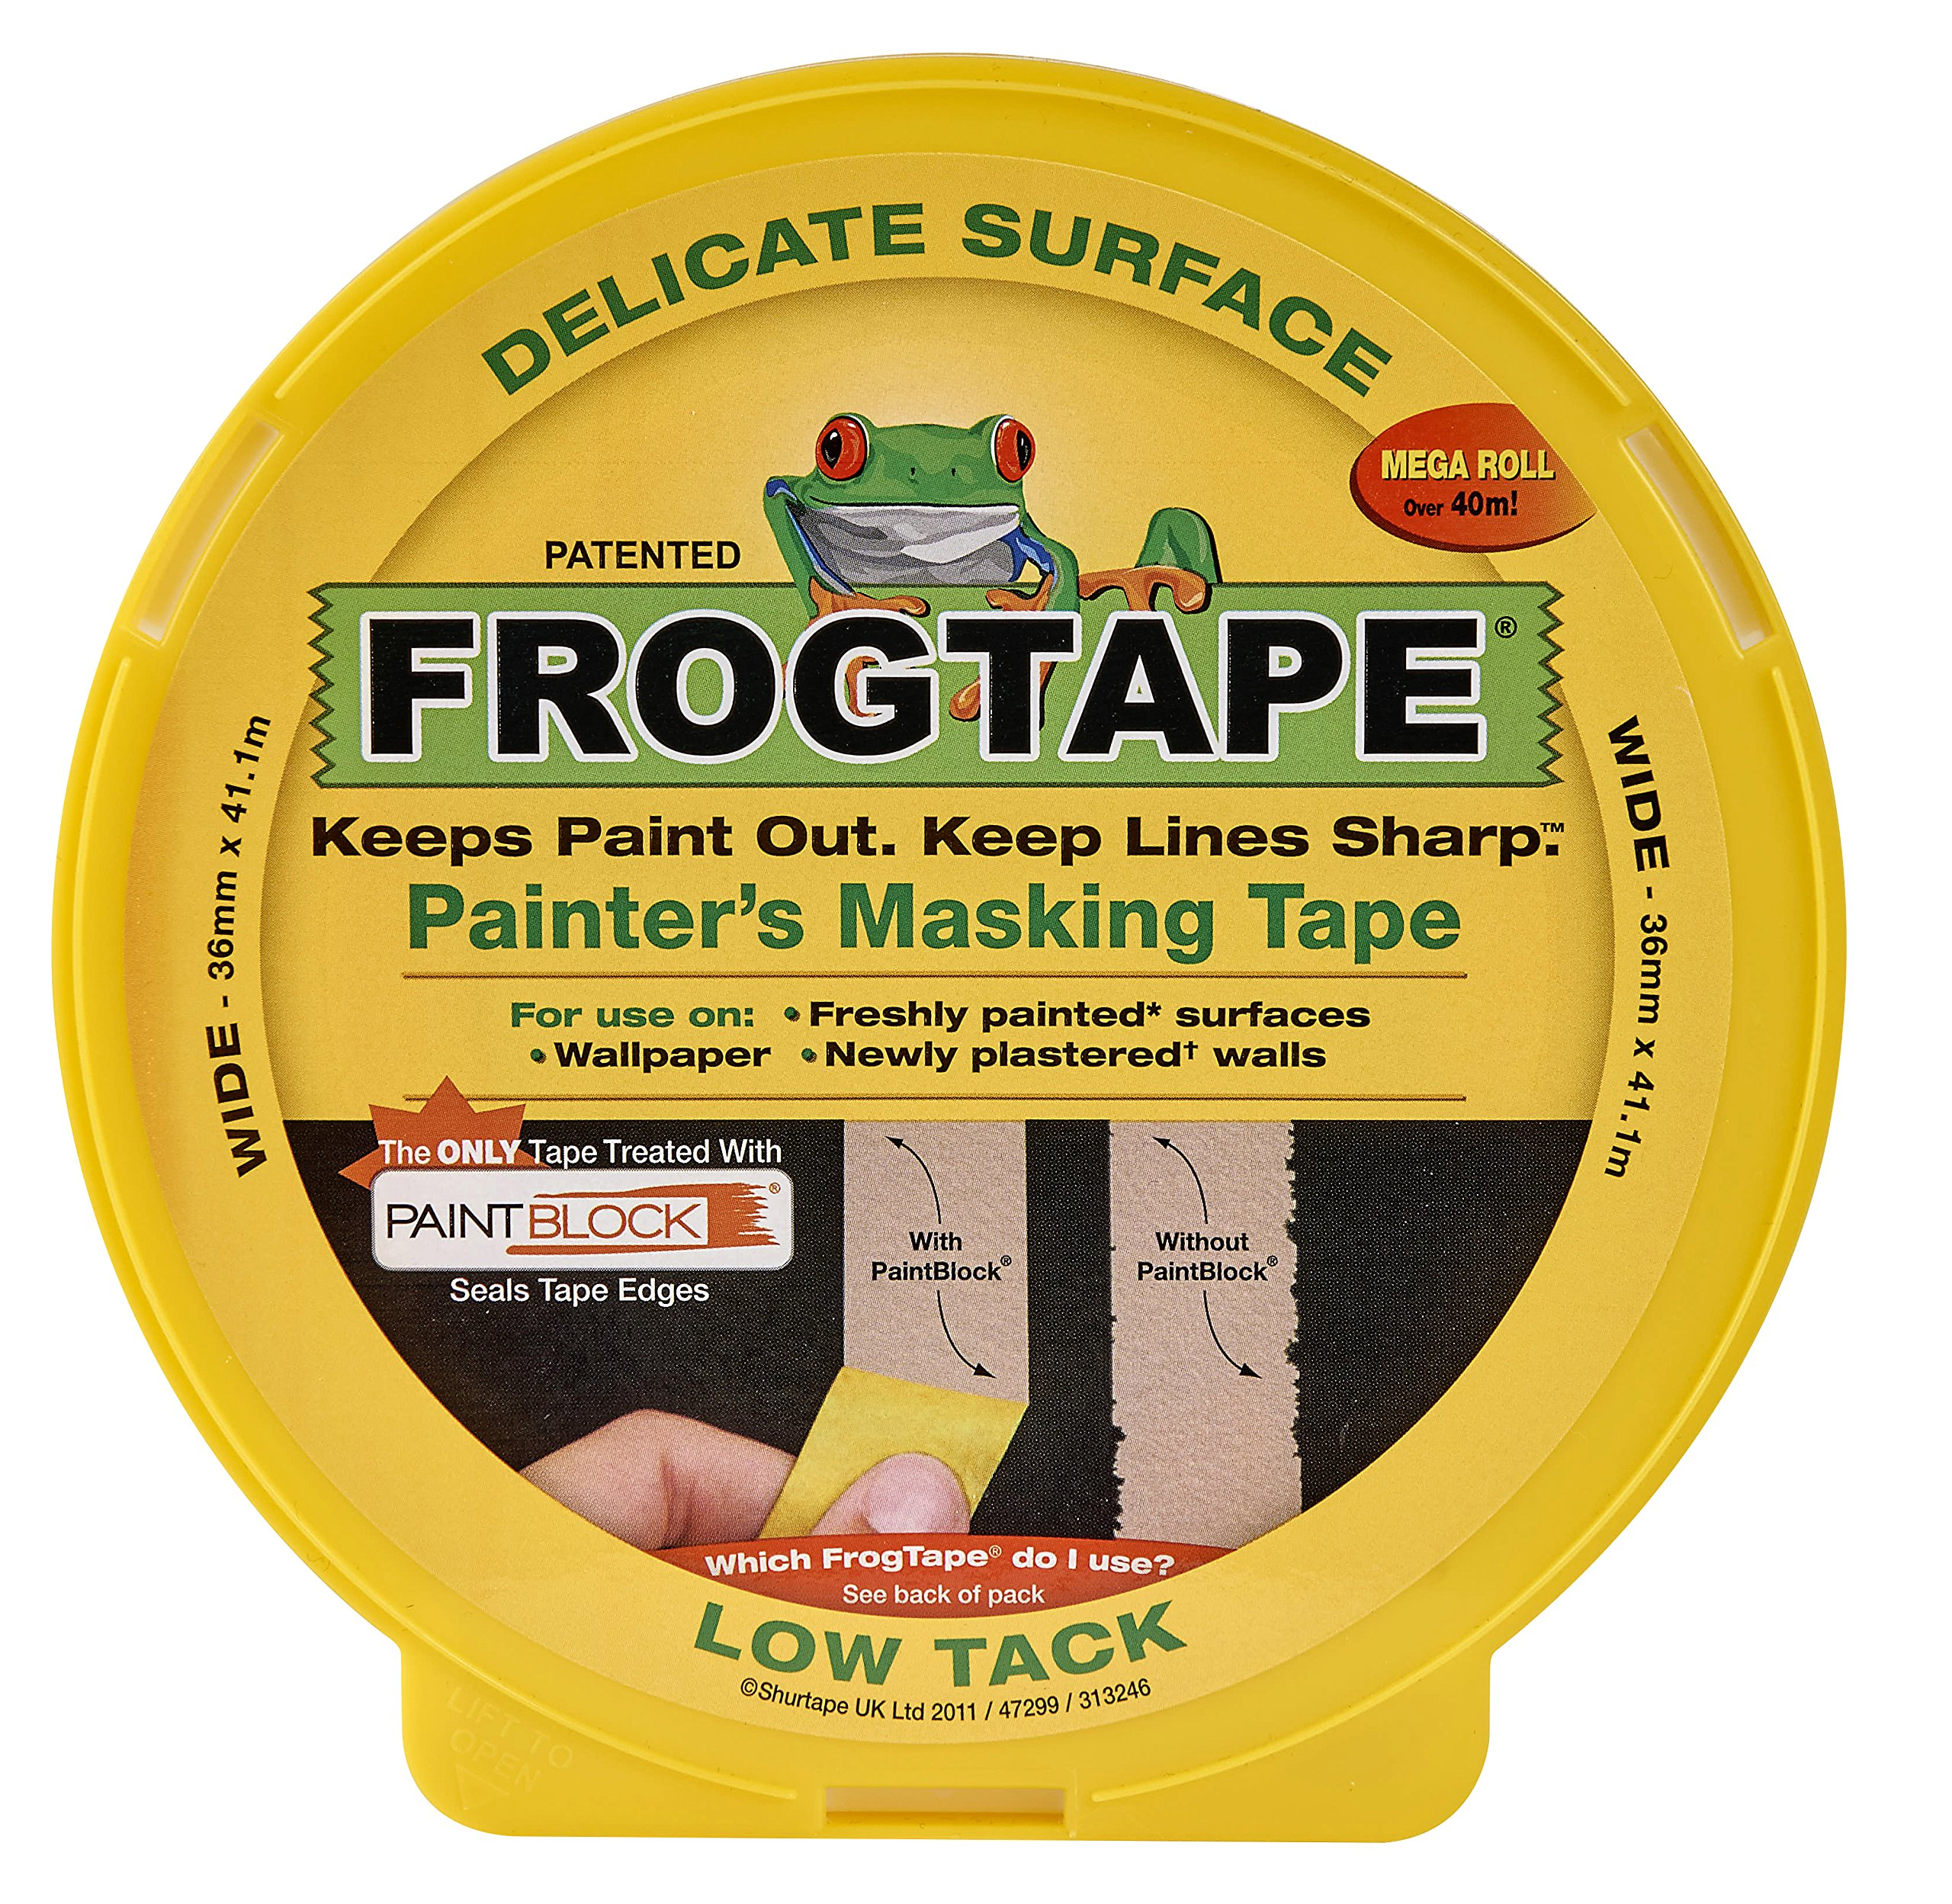 Frog Tape Painter's Masking Tape 36mm x 41m, Delicate Surface by FrogTape (Image #1)